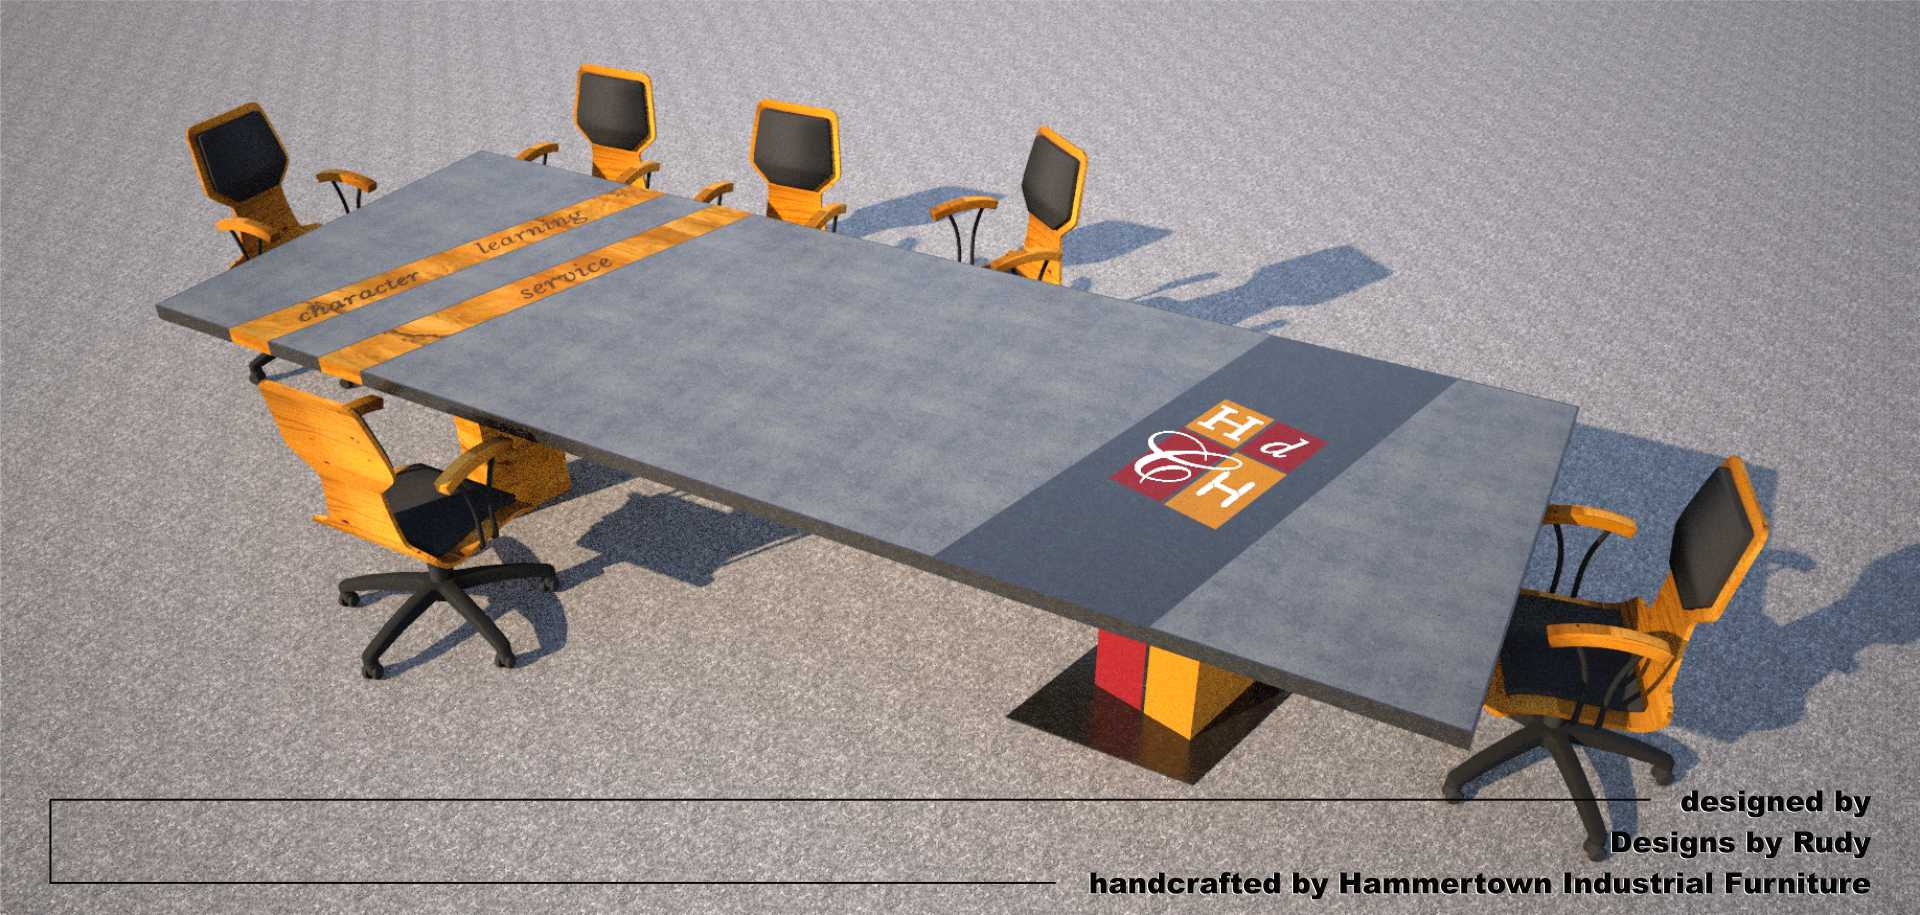 Concrete Conference table for HDCH, designed by Designs by Rudy